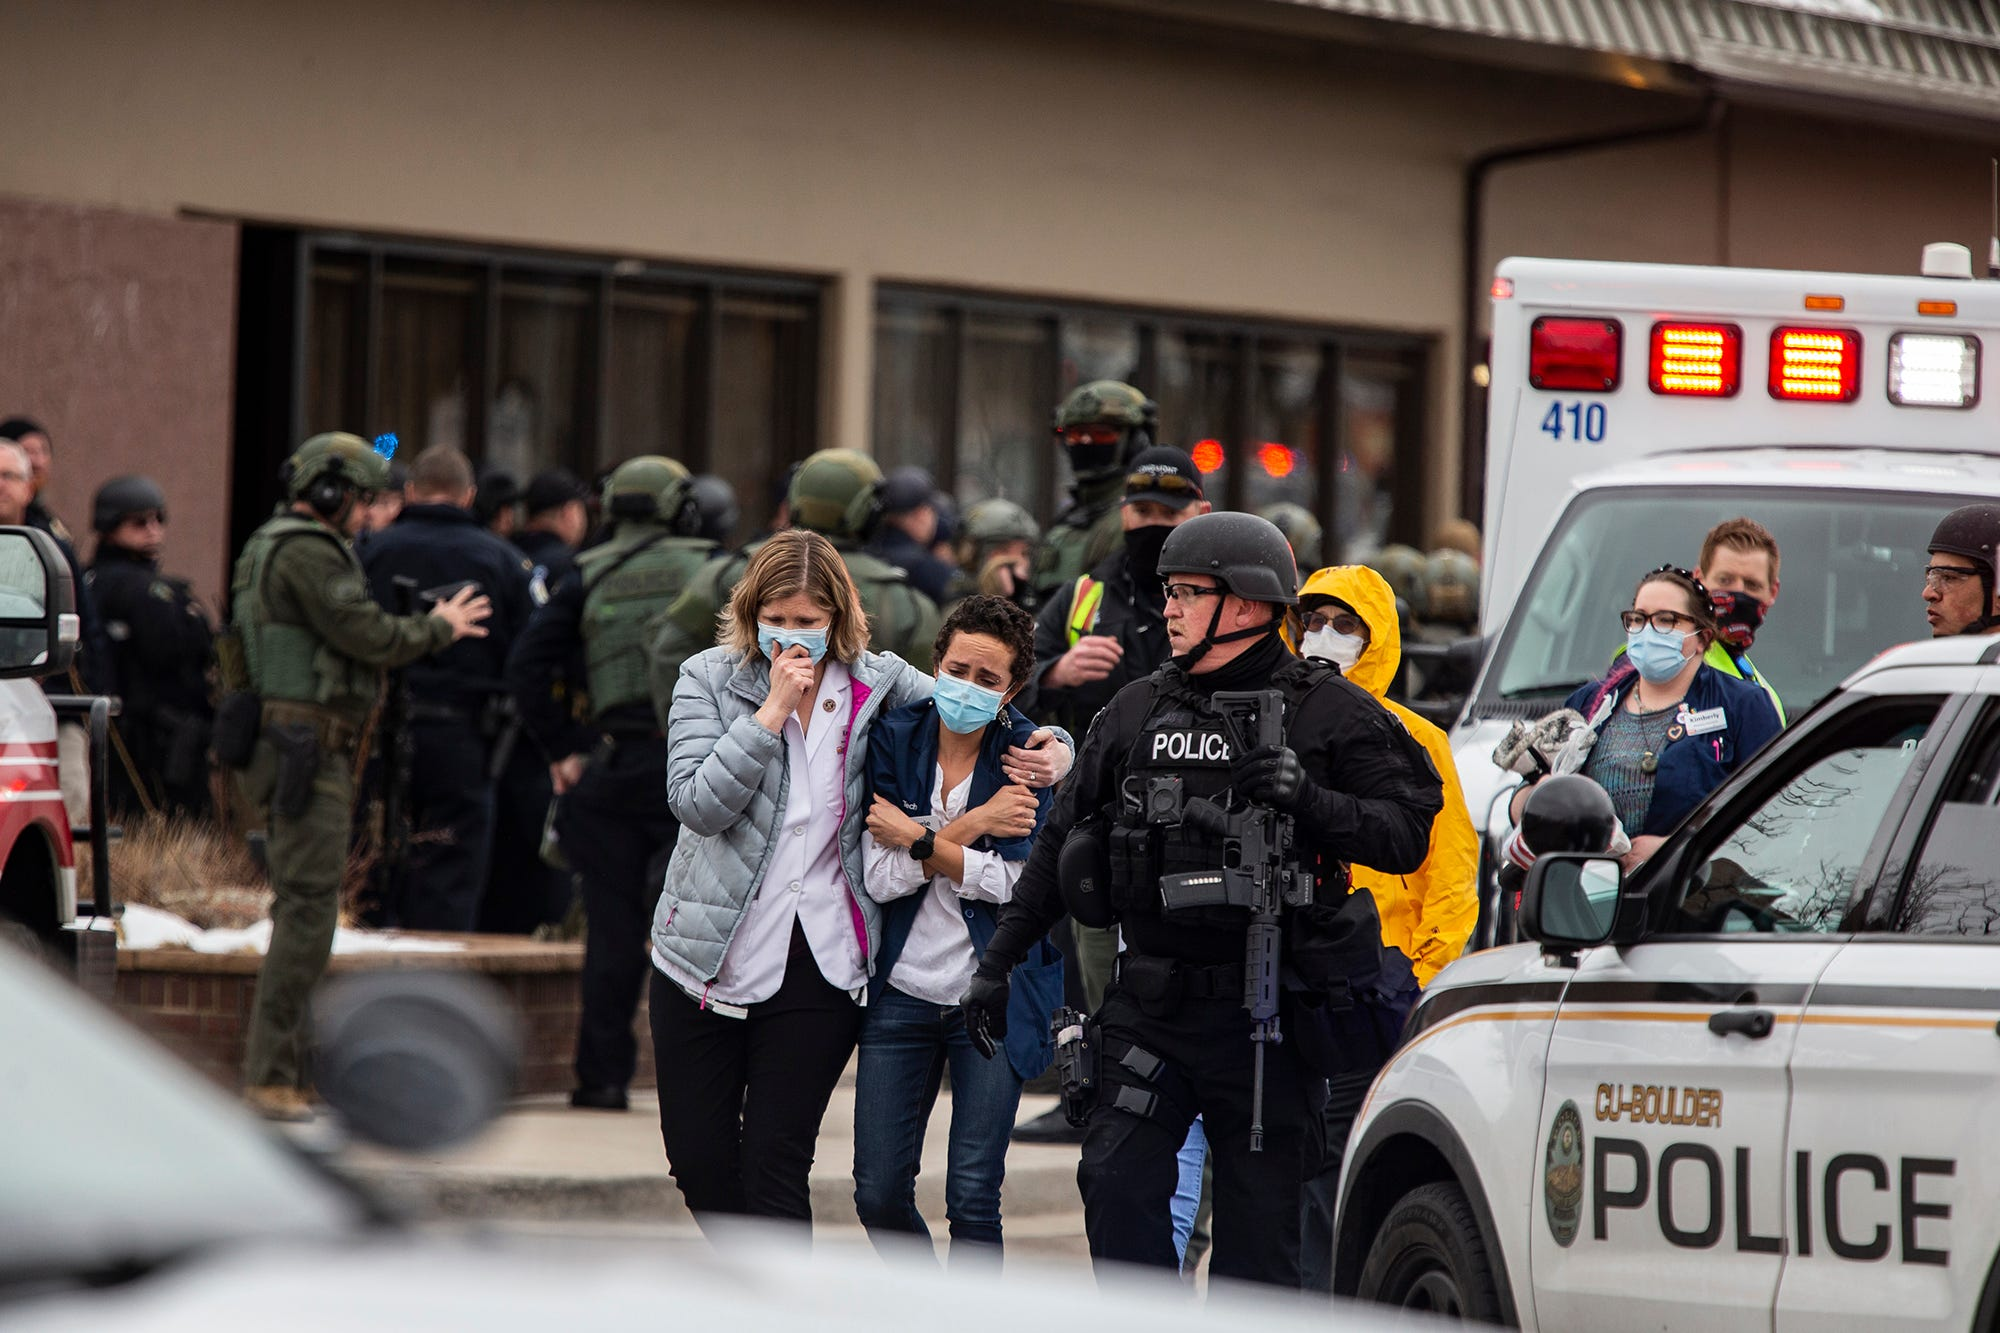 This is a sad day for Boulder : Gunman kills 10 at Colorado supermarket, including police officer, in second US mass shooting in a week